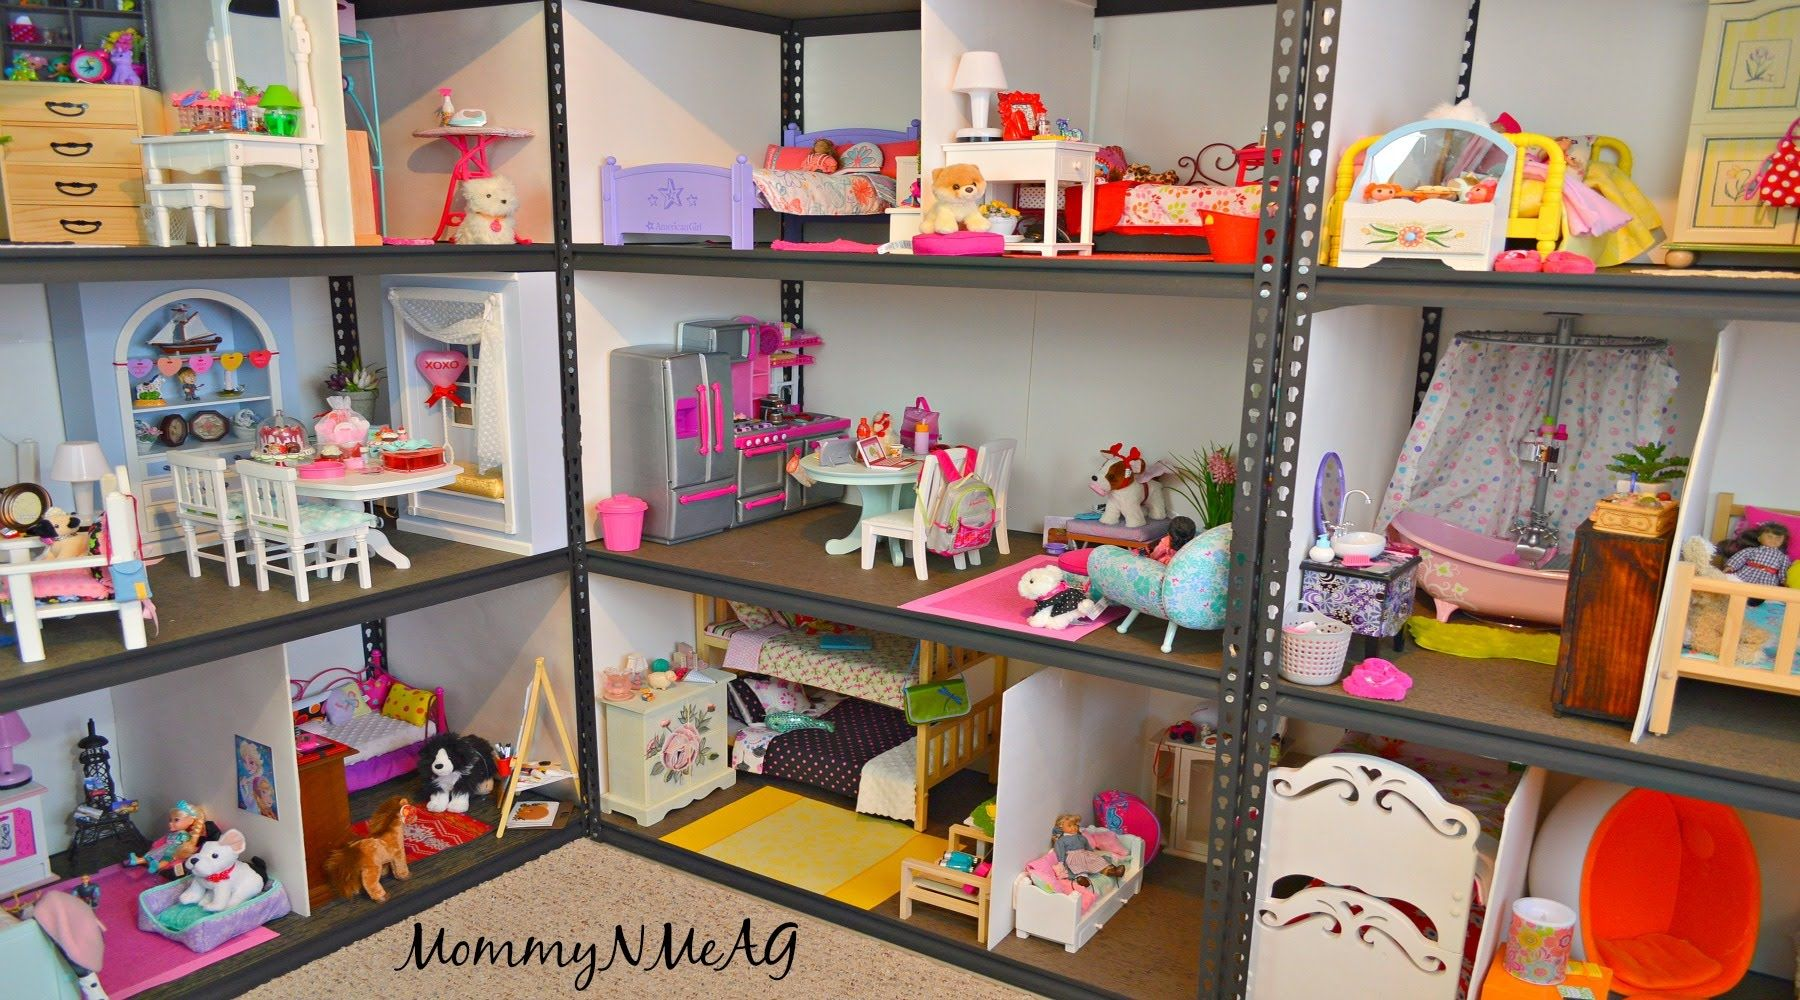 HUGE AMERICAN GIRL DOLL HOUSE !! | NEW 2016 Doll House Tour | MommyN MeAG #americangirlhouse